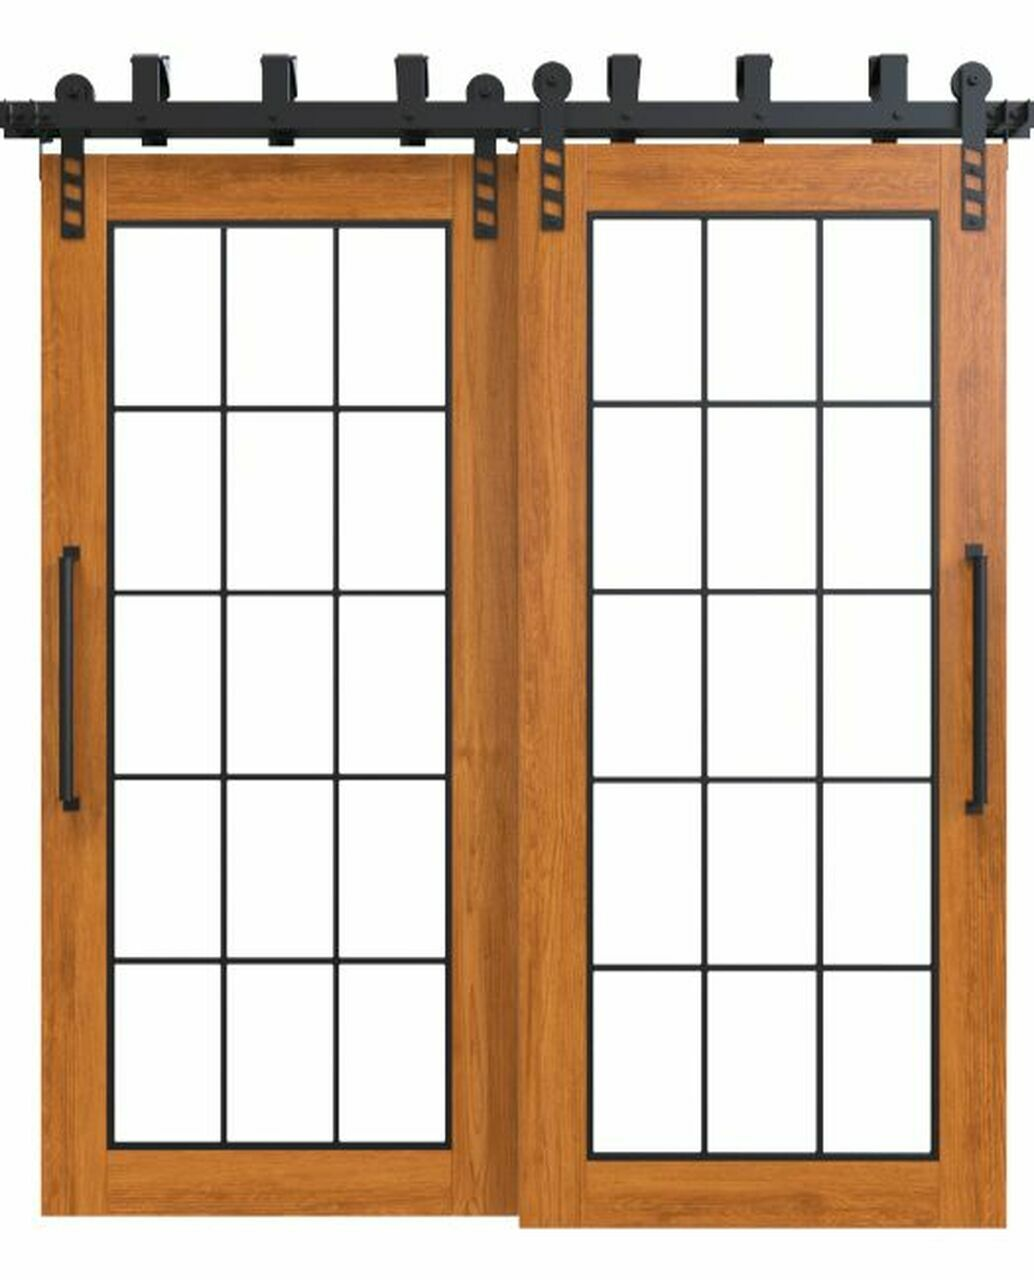 stained wood bypass barn door with full glass window pane